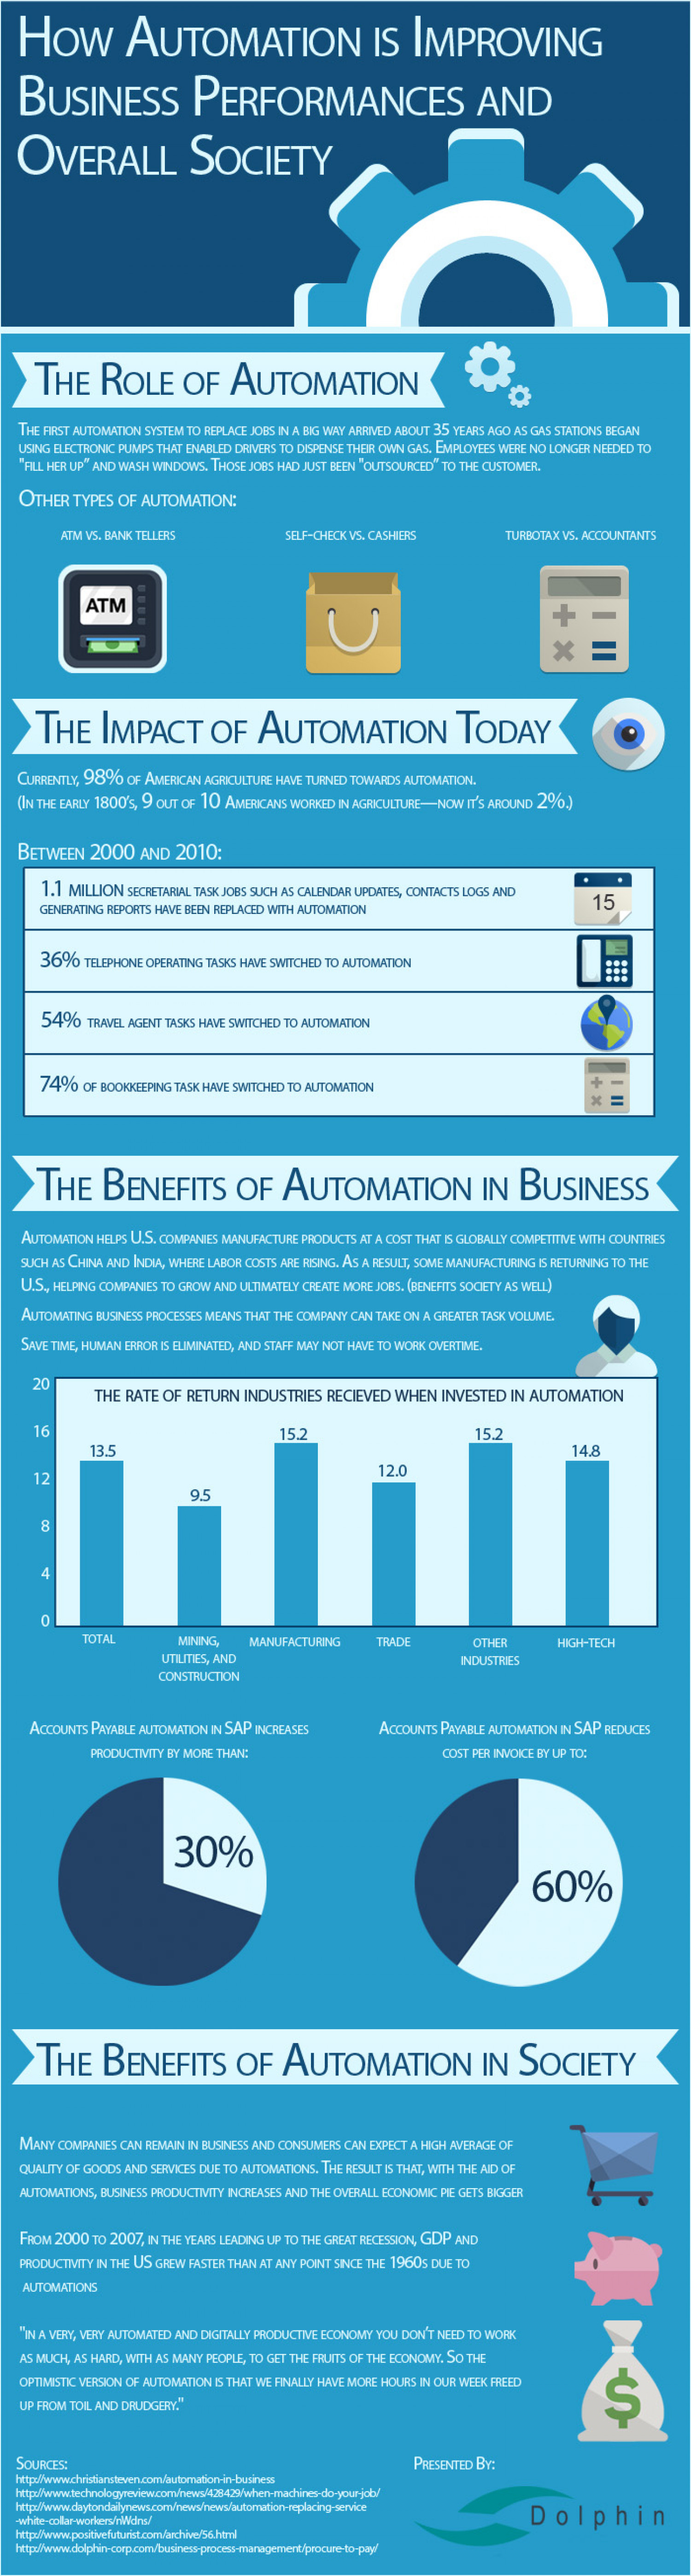 How Automation Improves Business Performance and Overall Society Infographic